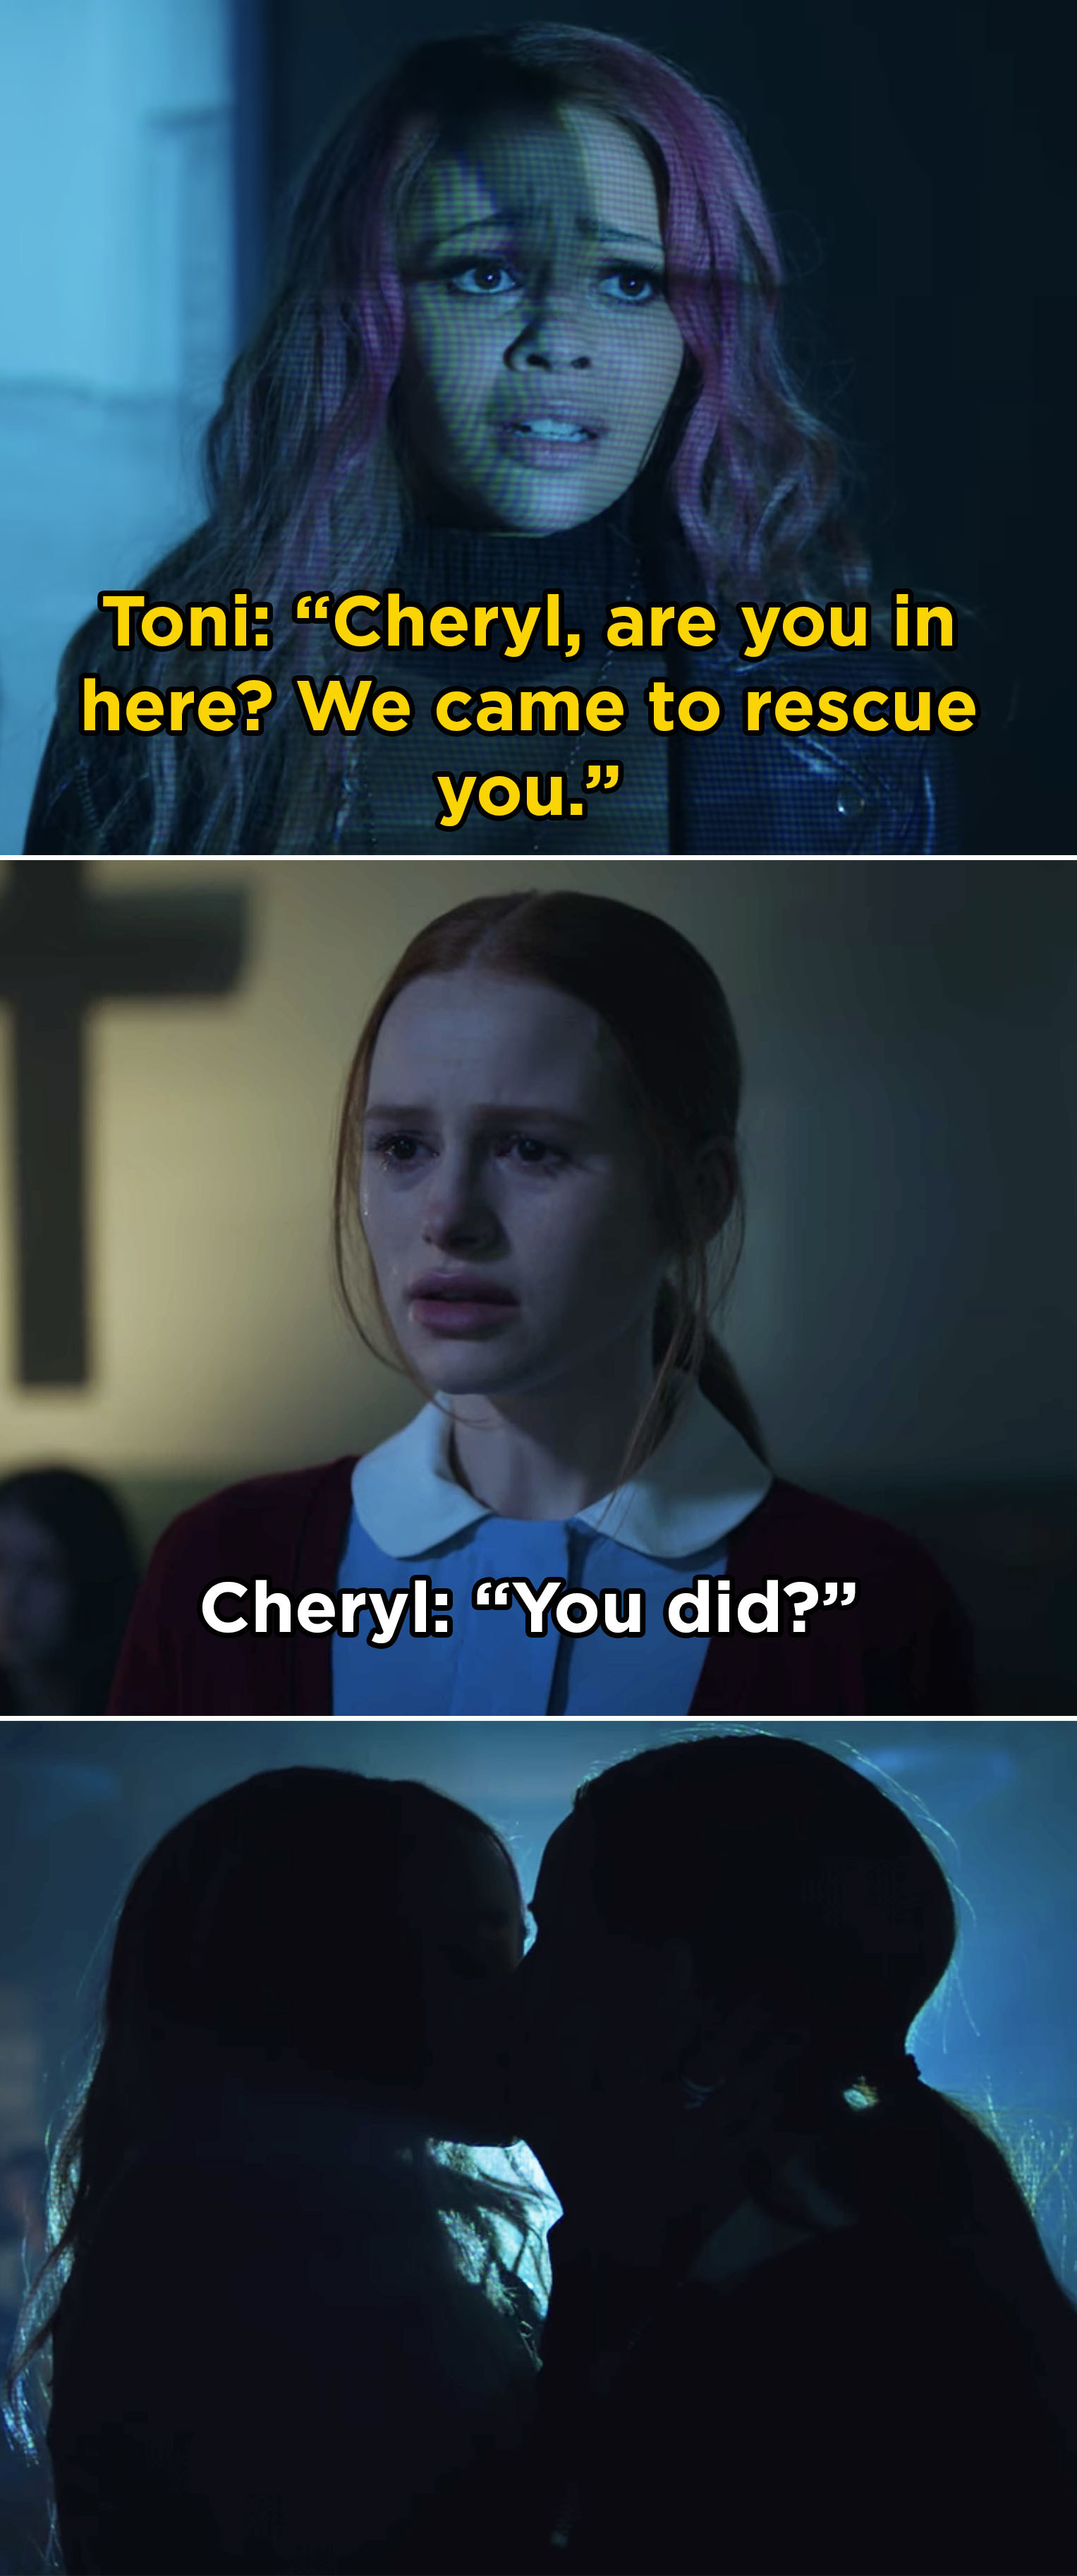 In  Riverdale , Cheryl and Toni finally got together after Toni and Veronica mounted a rescue to save Cheryl from the Sisters of Quiet Mercy.